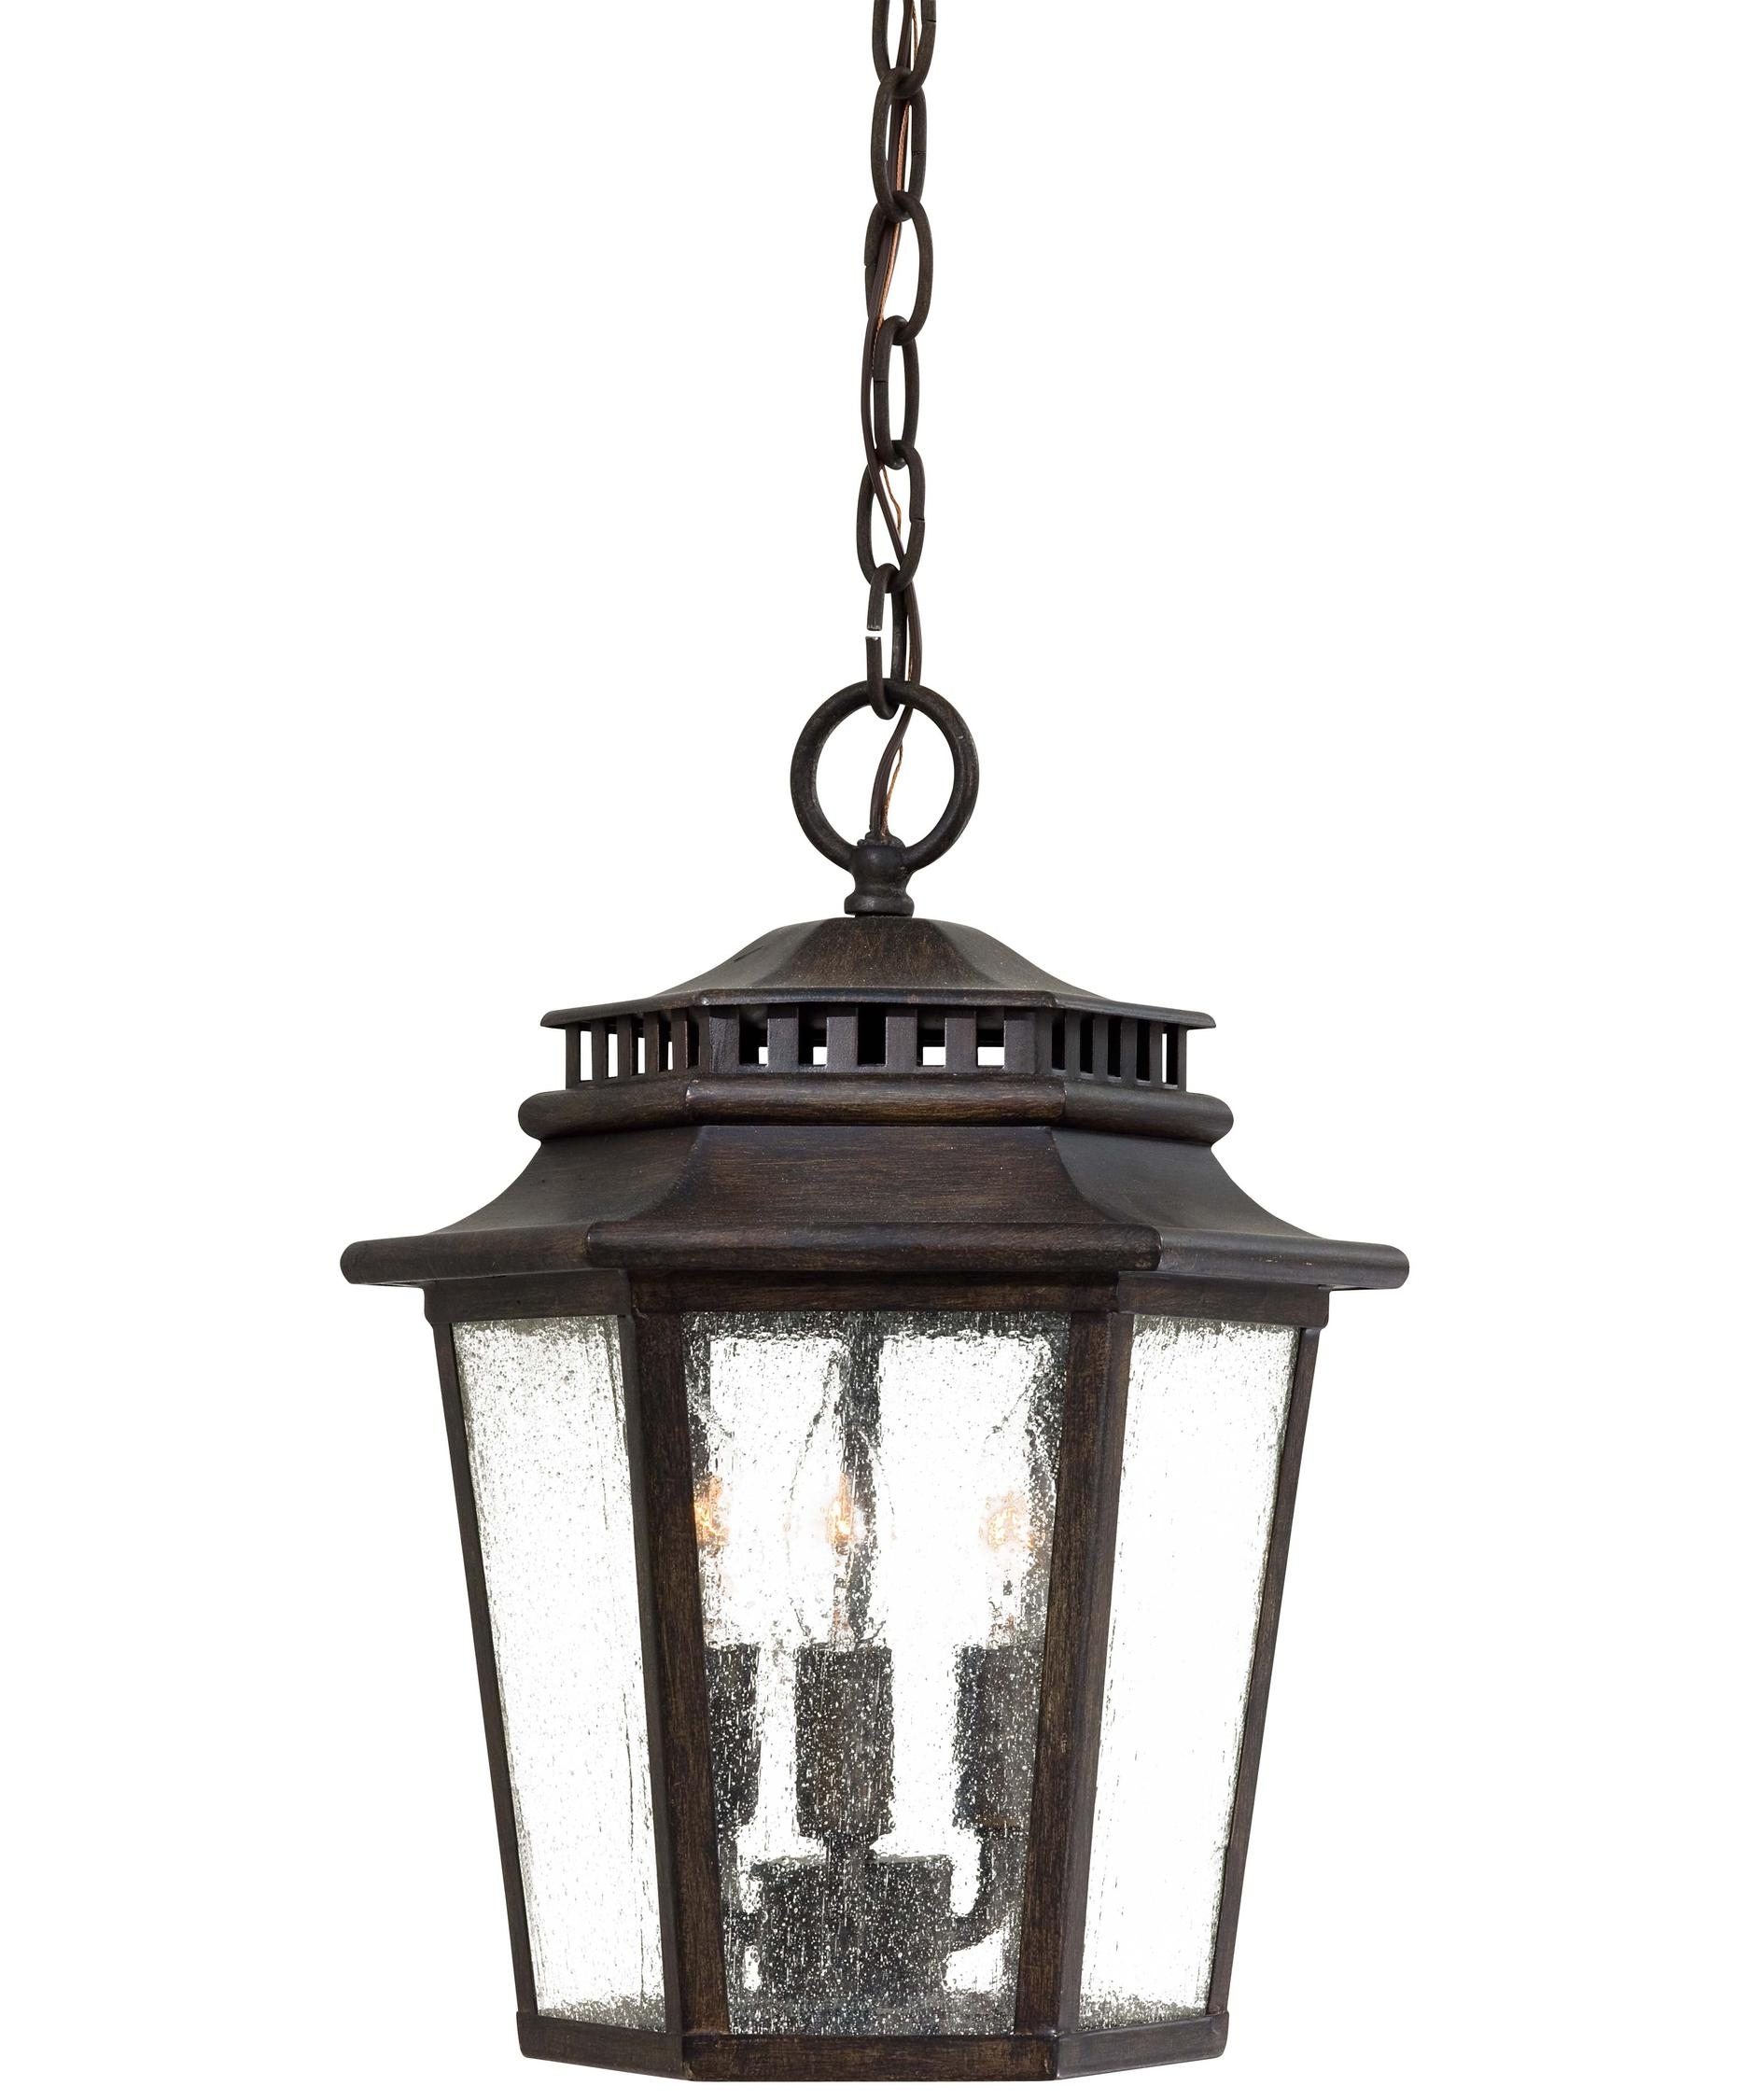 Large Hanging Outdoor Lights – Outdoor Designs Within Metal Outdoor Hanging Lights (#5 of 15)